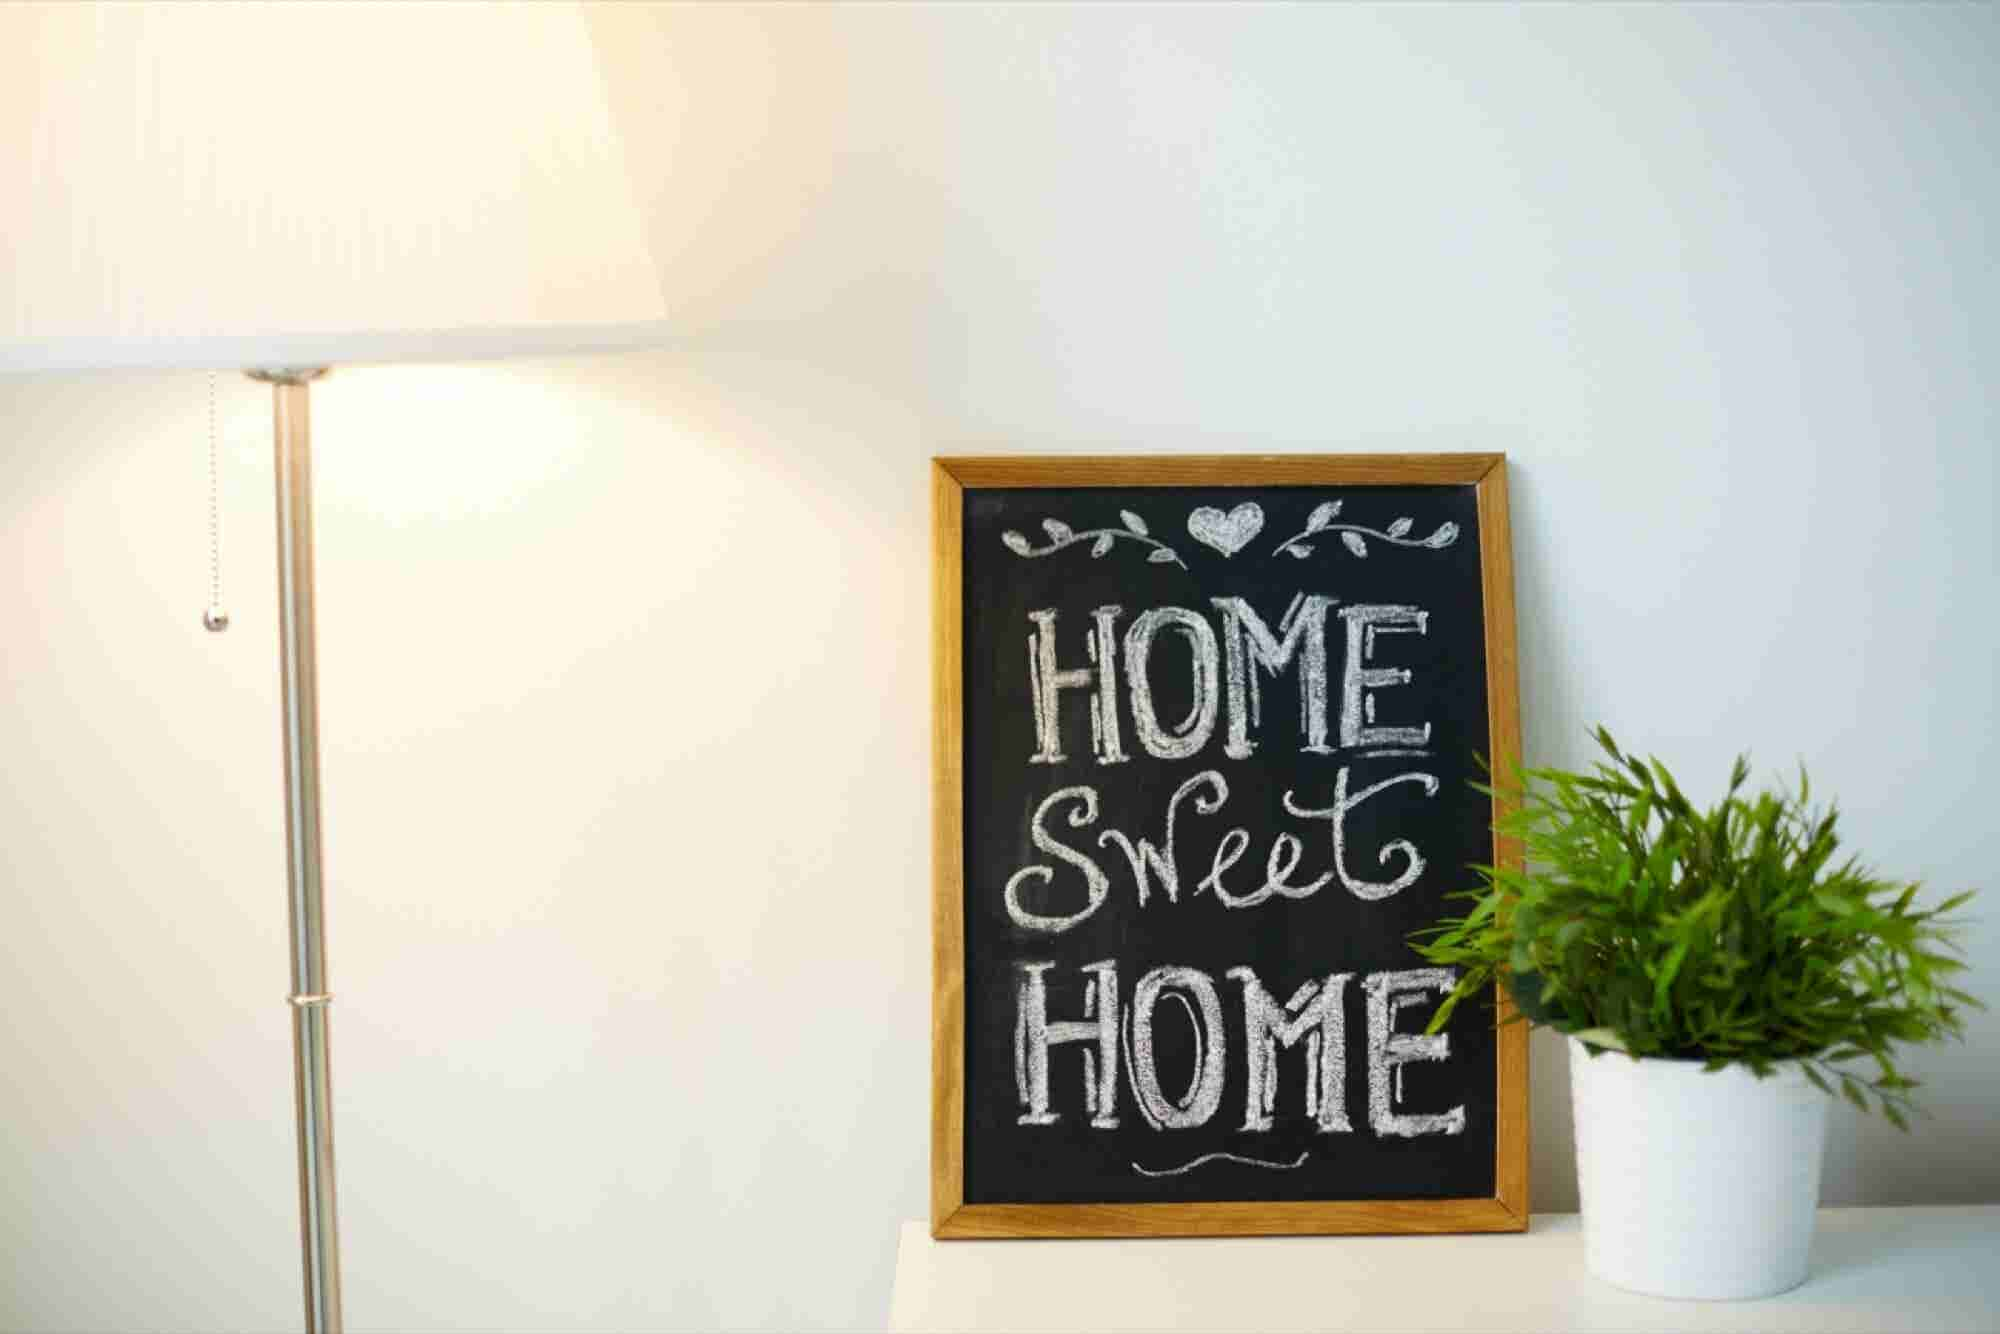 How Home Decor E-marketplaces are Relying on Brick and Mortar Models for Revenue